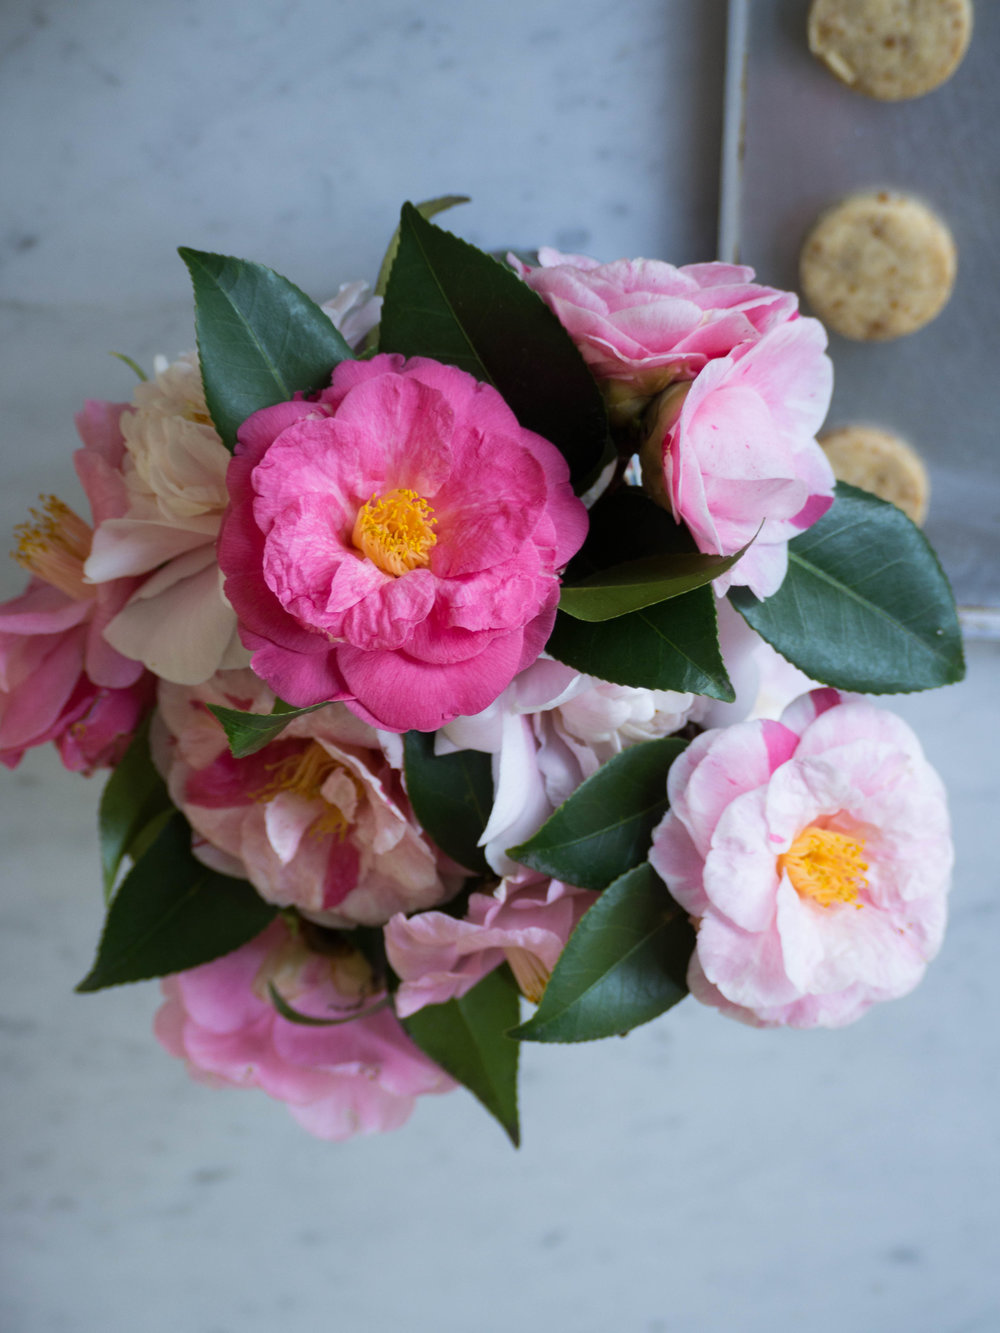 Homegrown Camellias